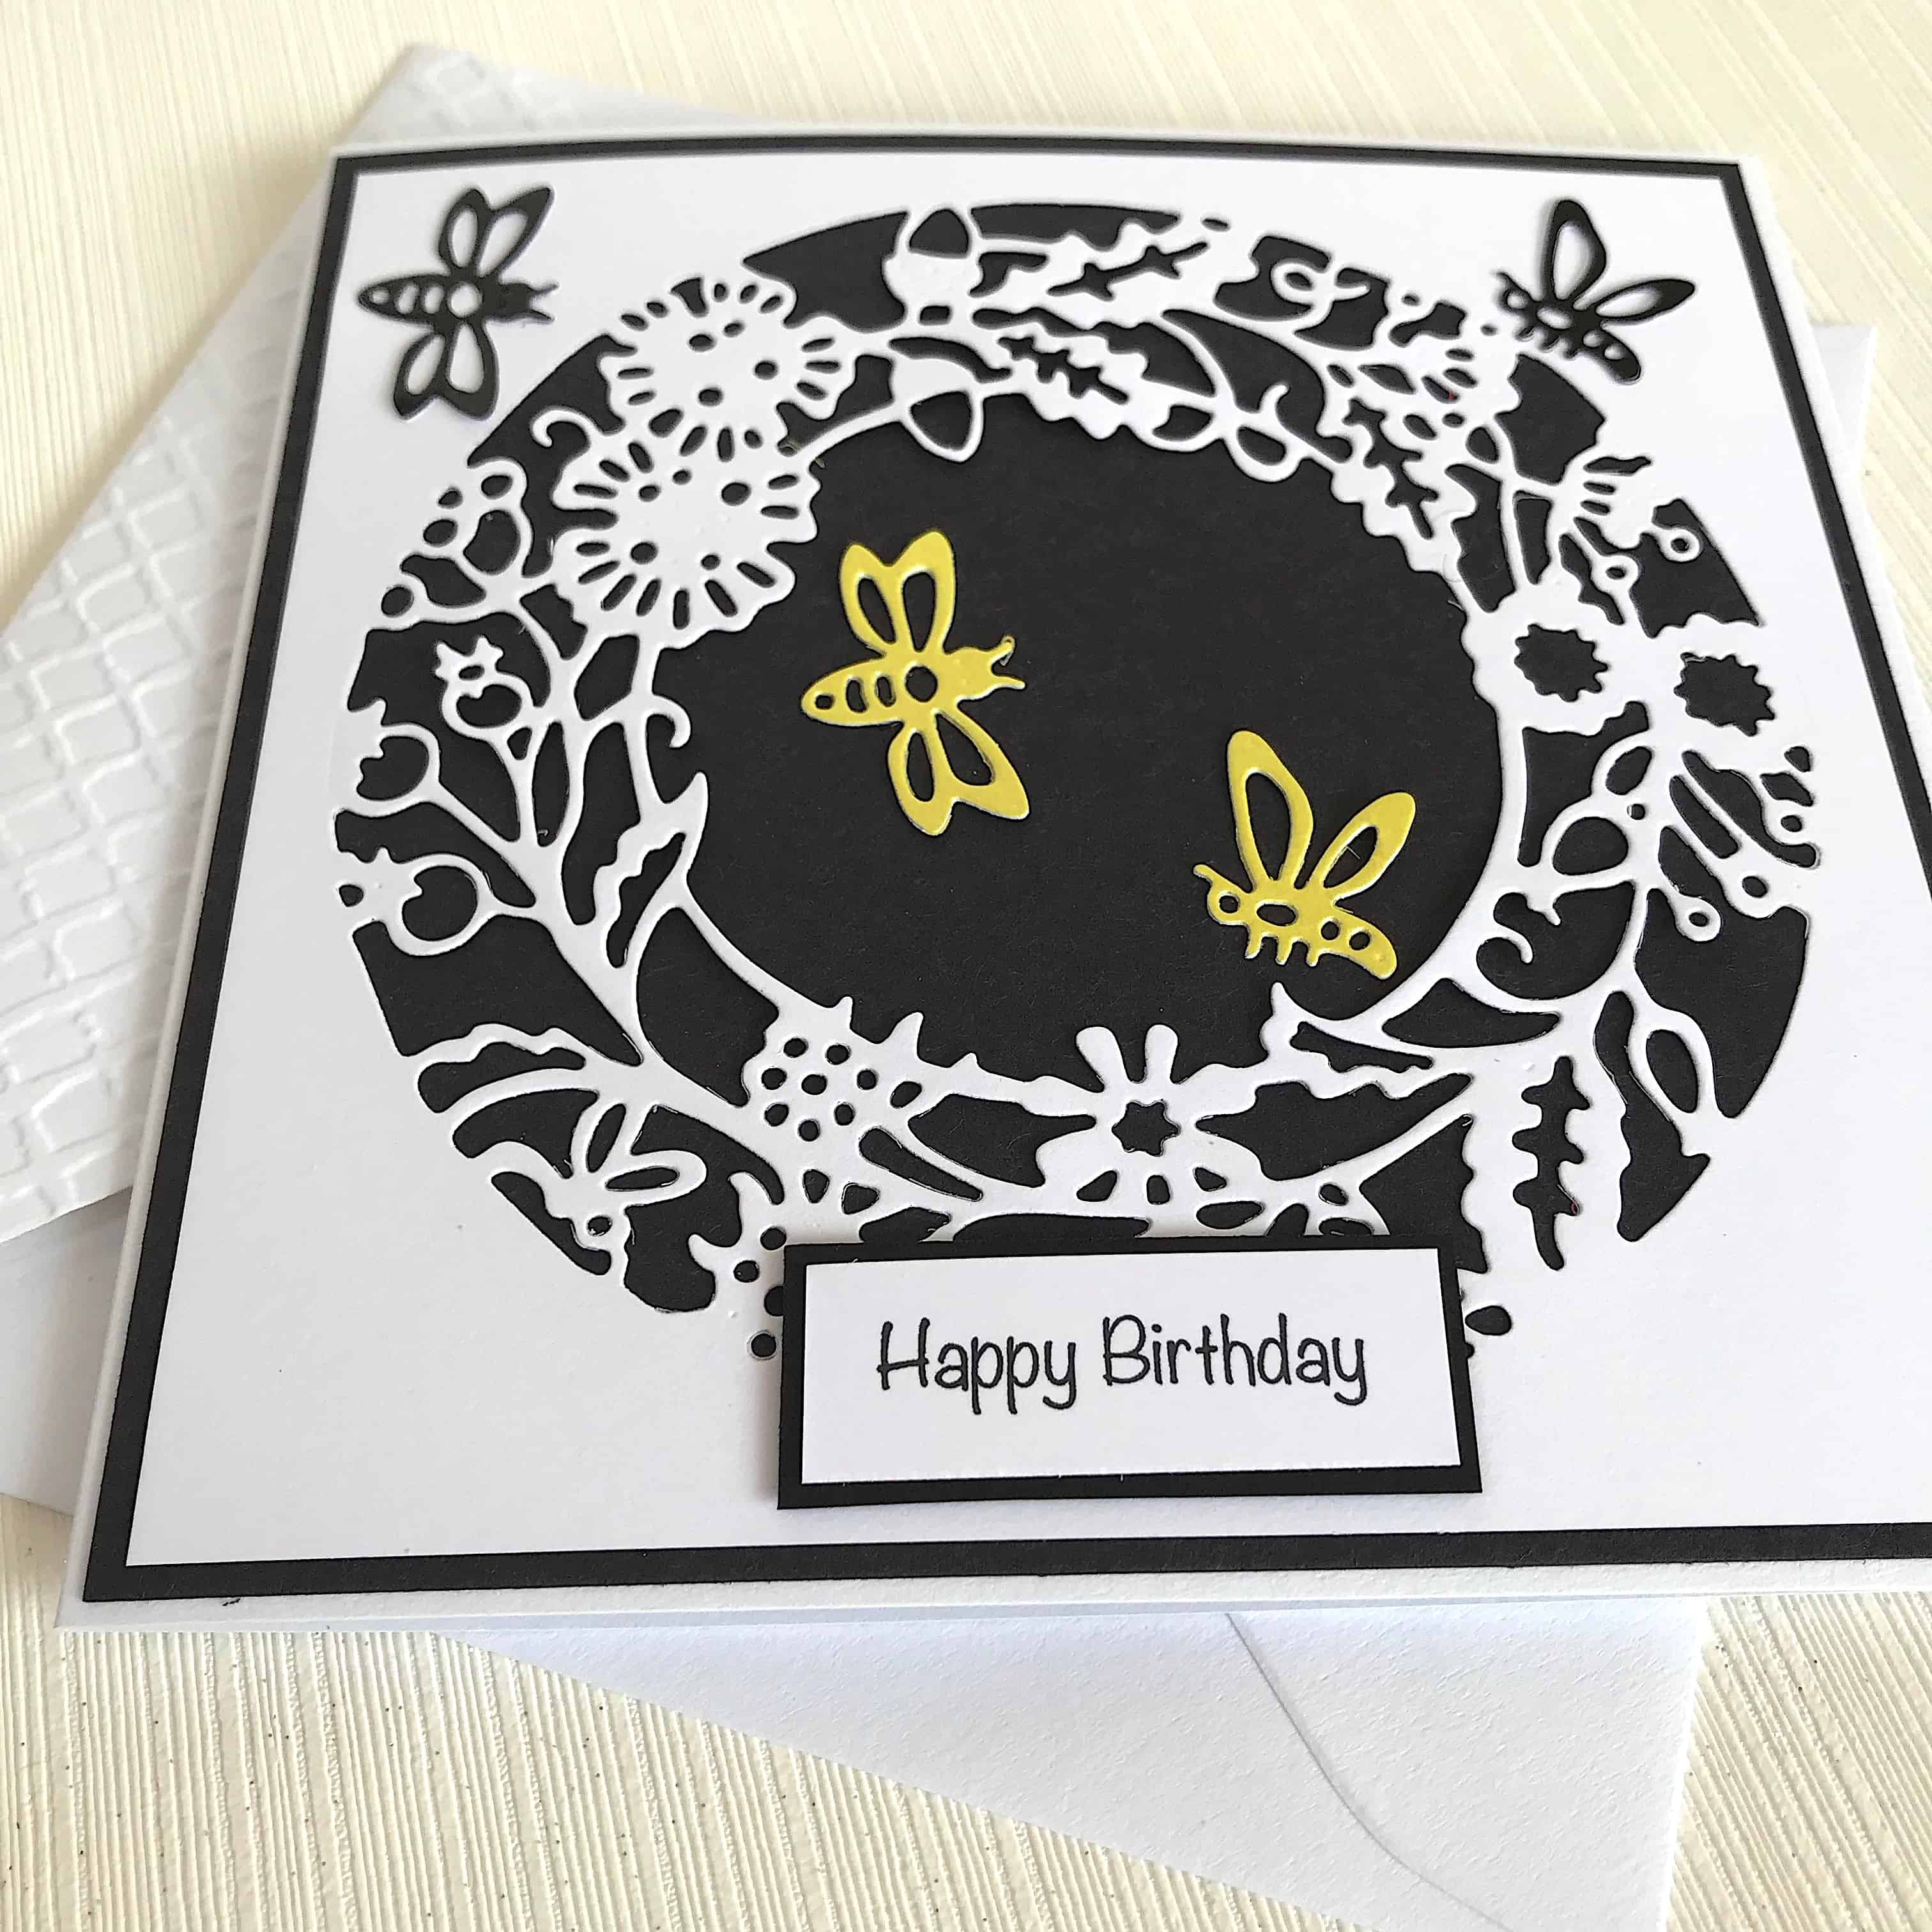 Busy Bees Handmade Birthday Card Free Personalisation